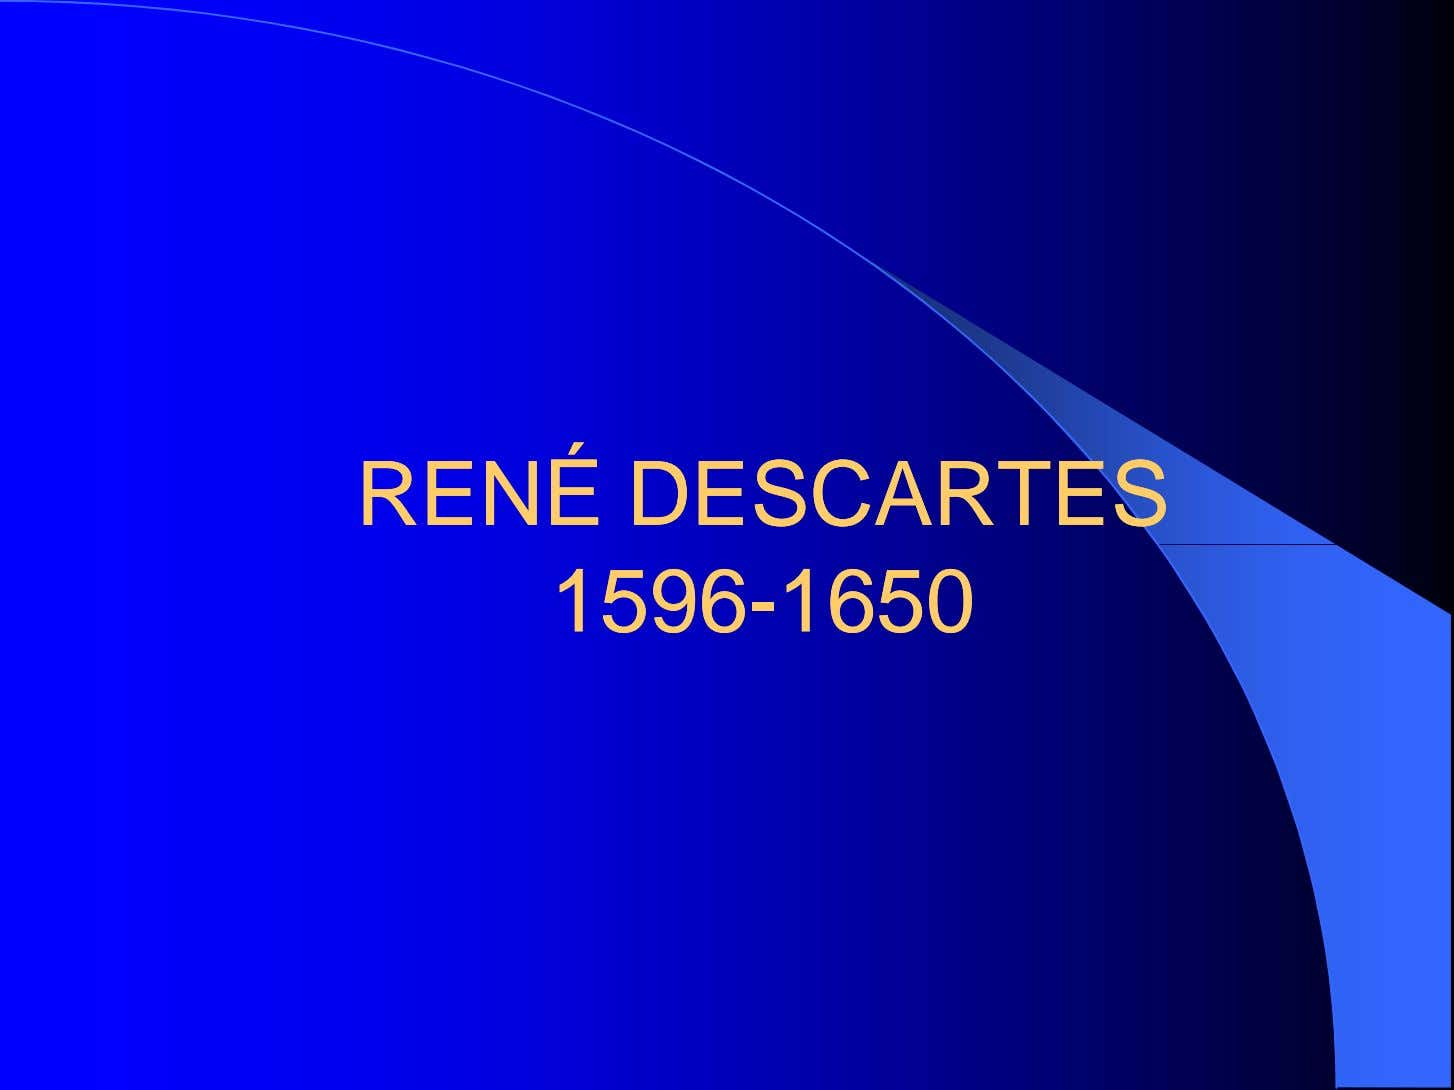 RENÉRENÉ DESCARTESDESCARTES 15961596--16501650